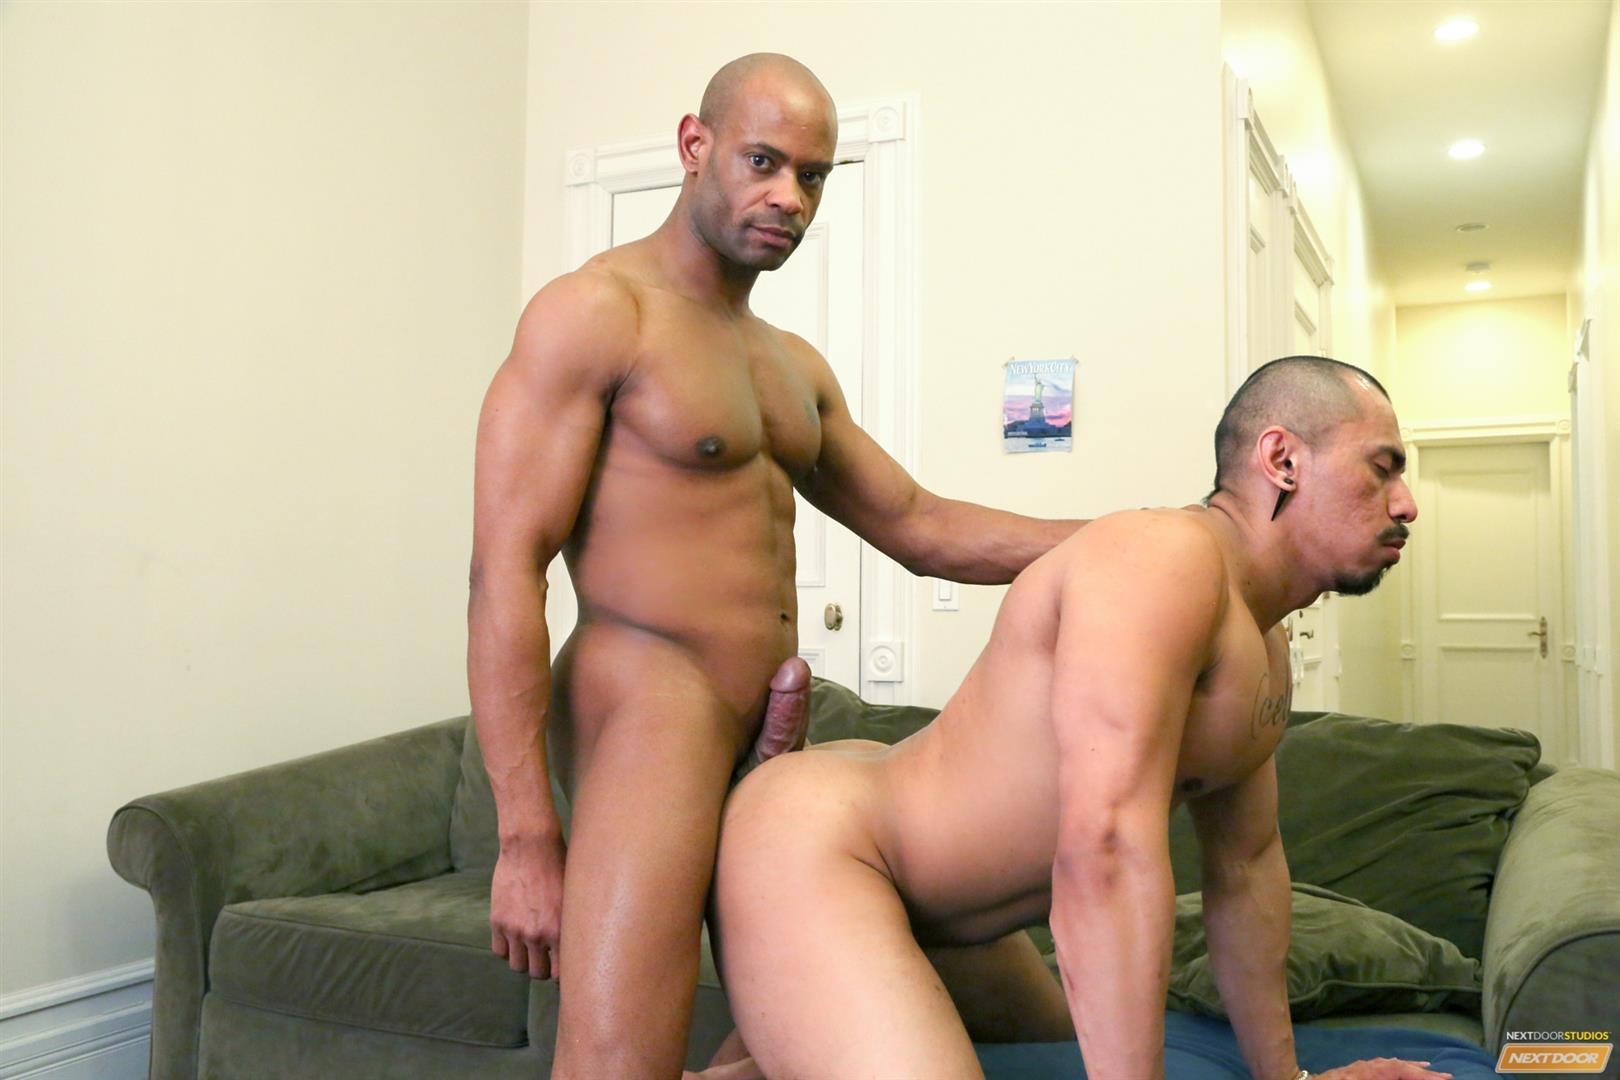 Big dick ebony gay porn